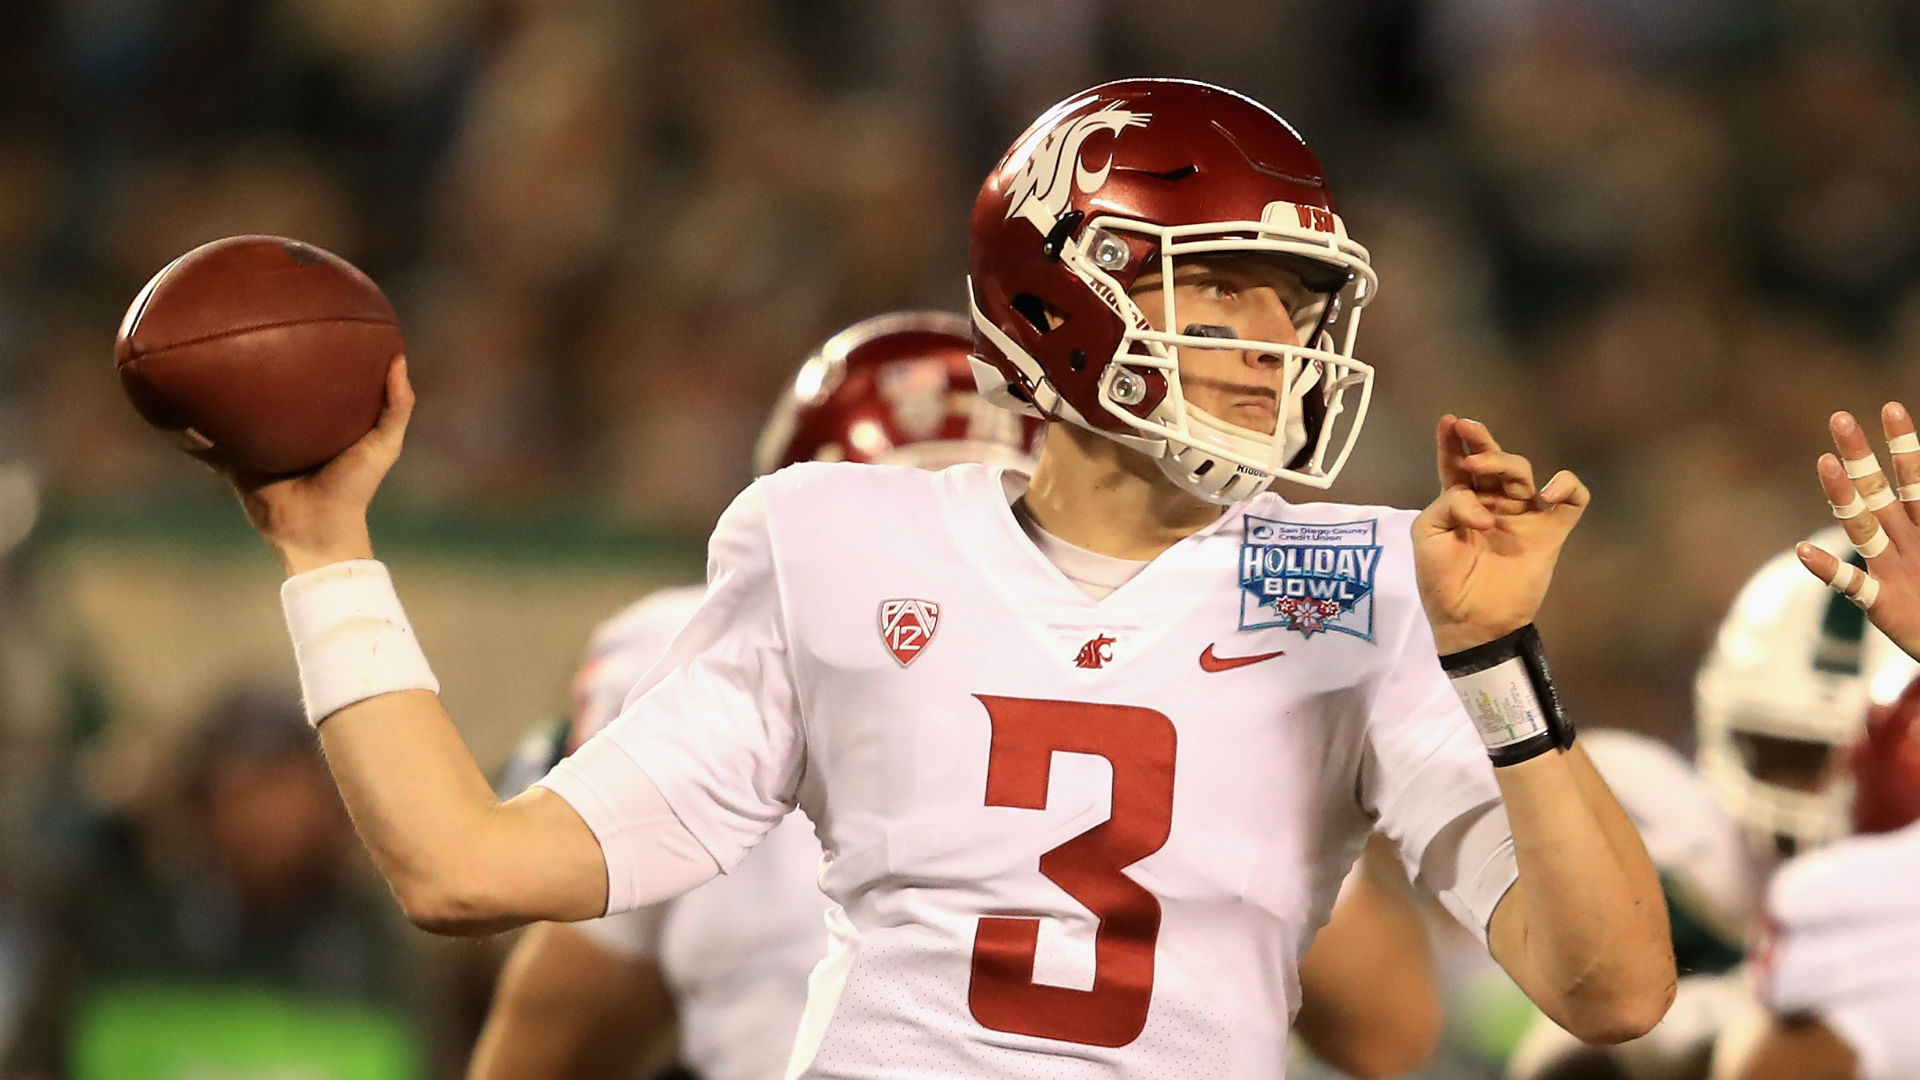 Mike Leach releases statement on Tyler Hilinski's death